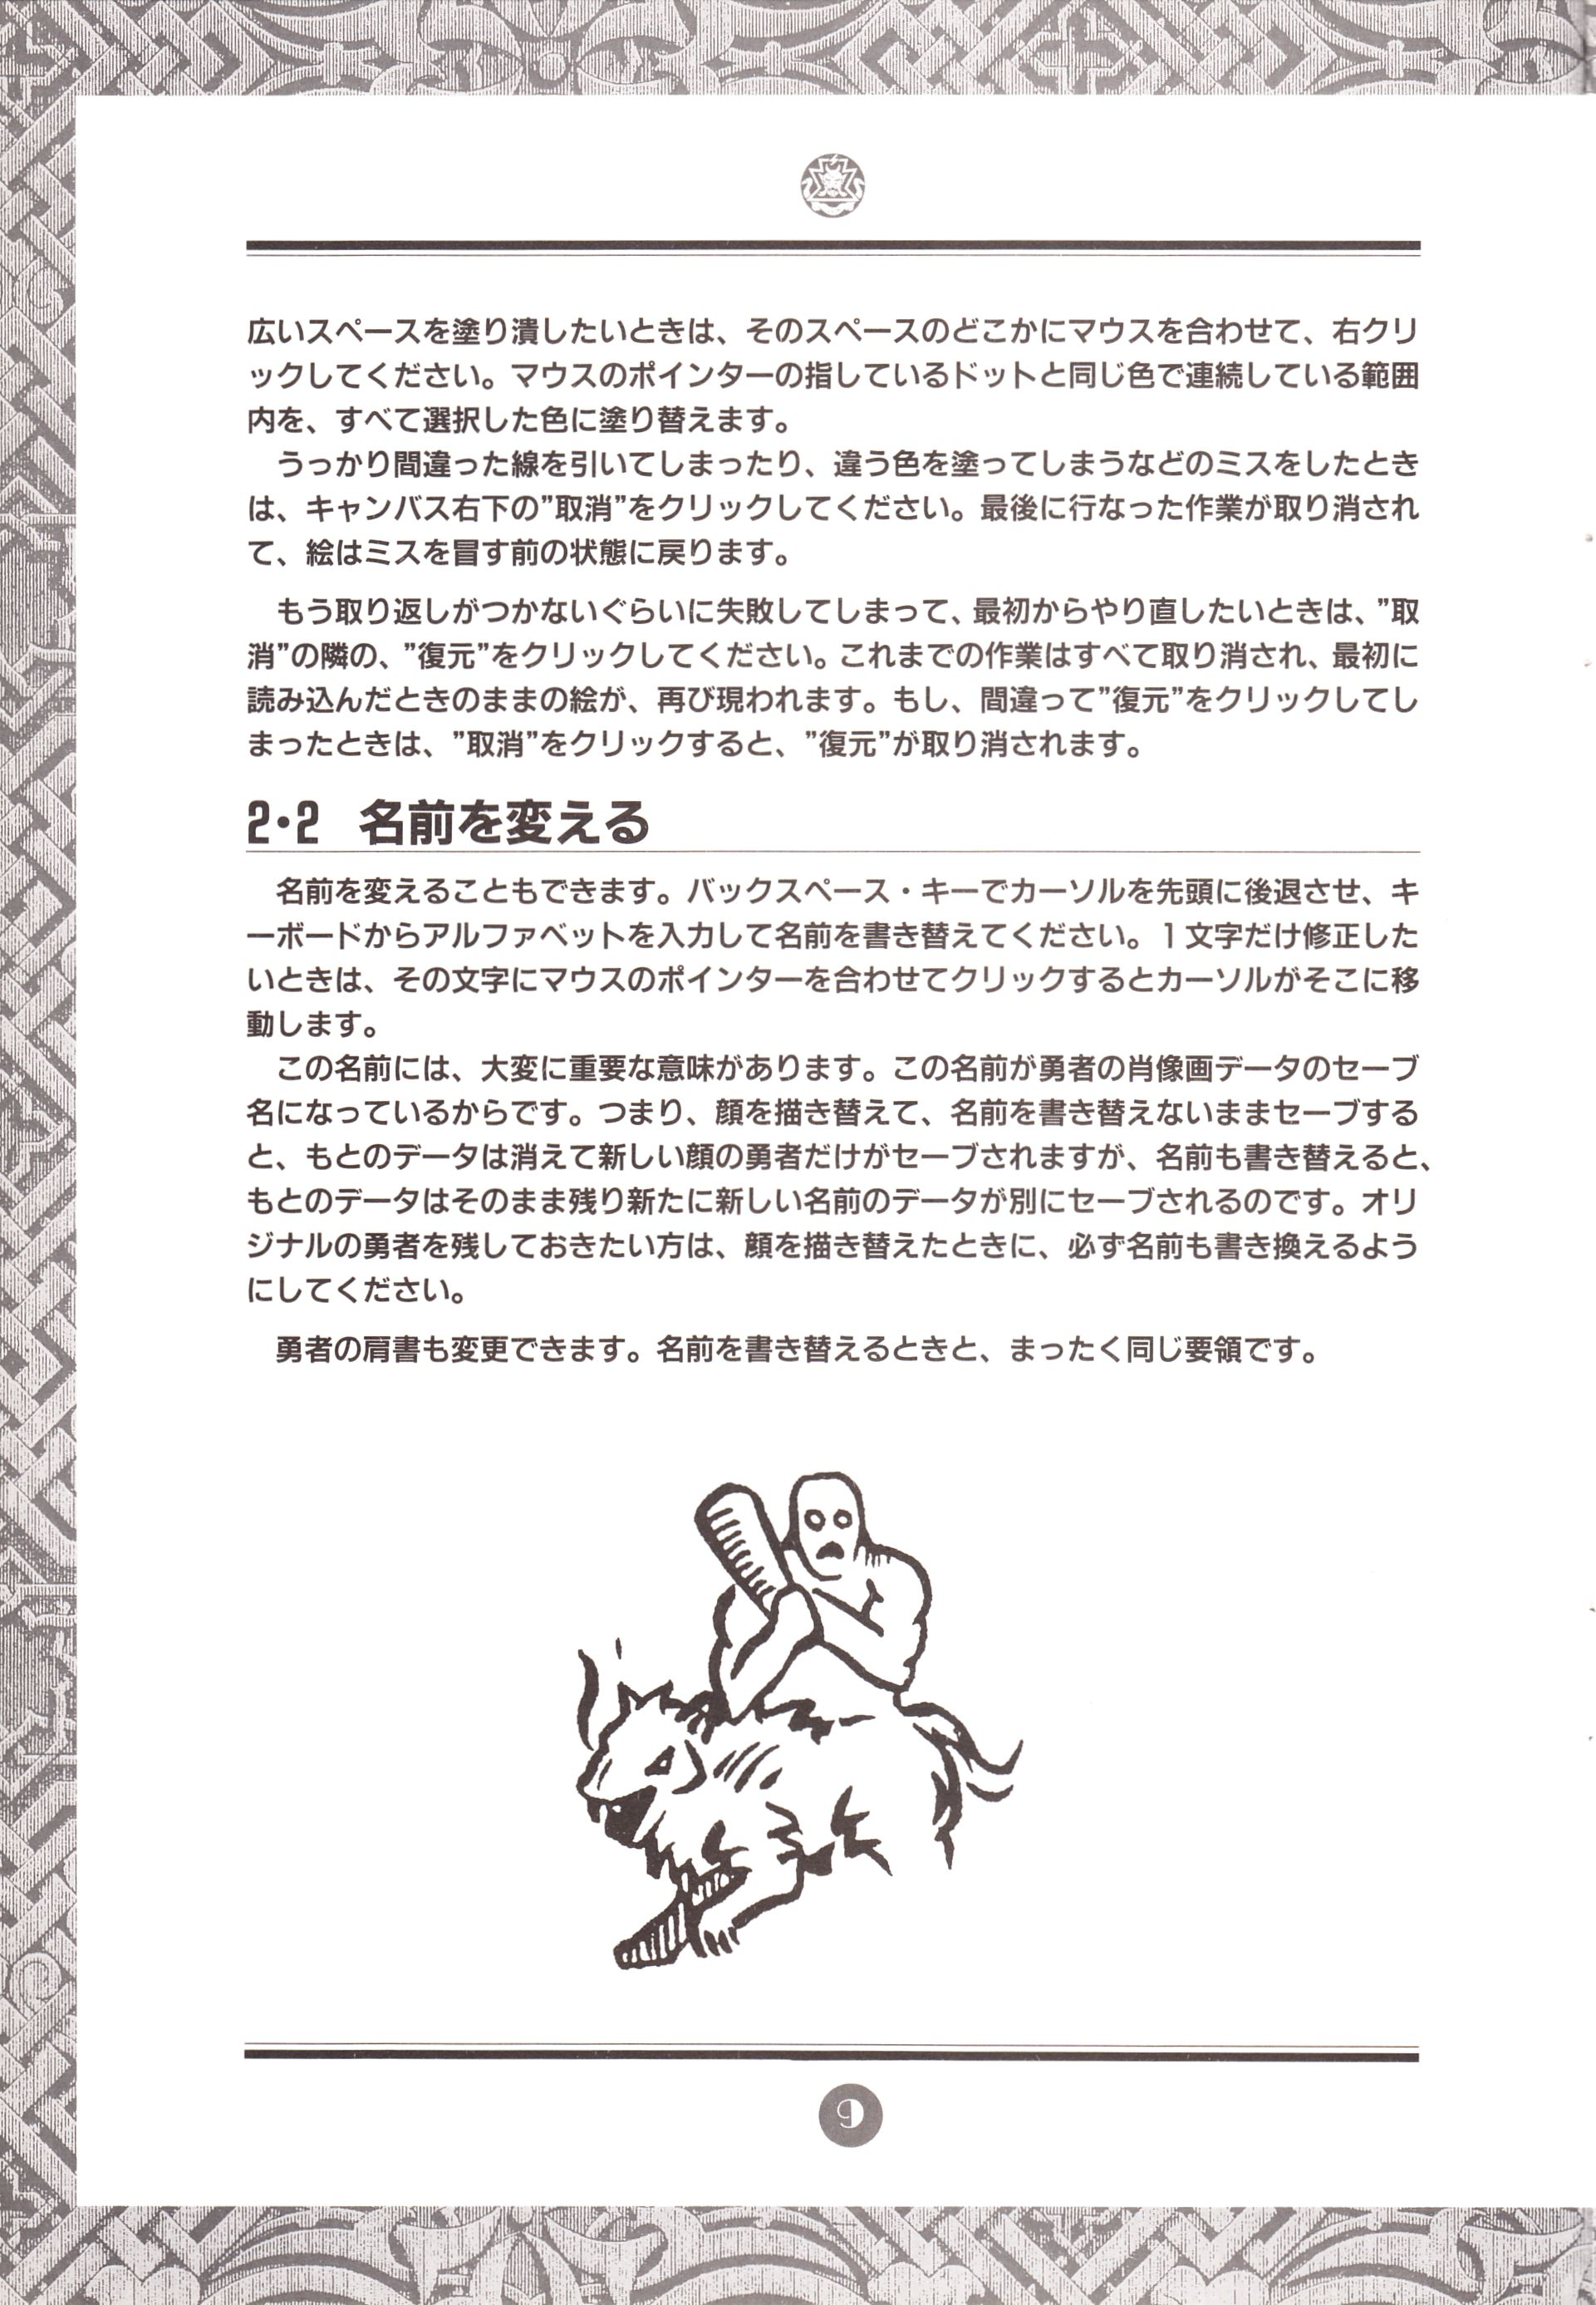 Game - Chaos Strikes Back - JP - PC-9801 - 3-5-inch - An Operation Manual - Page 012 - Scan